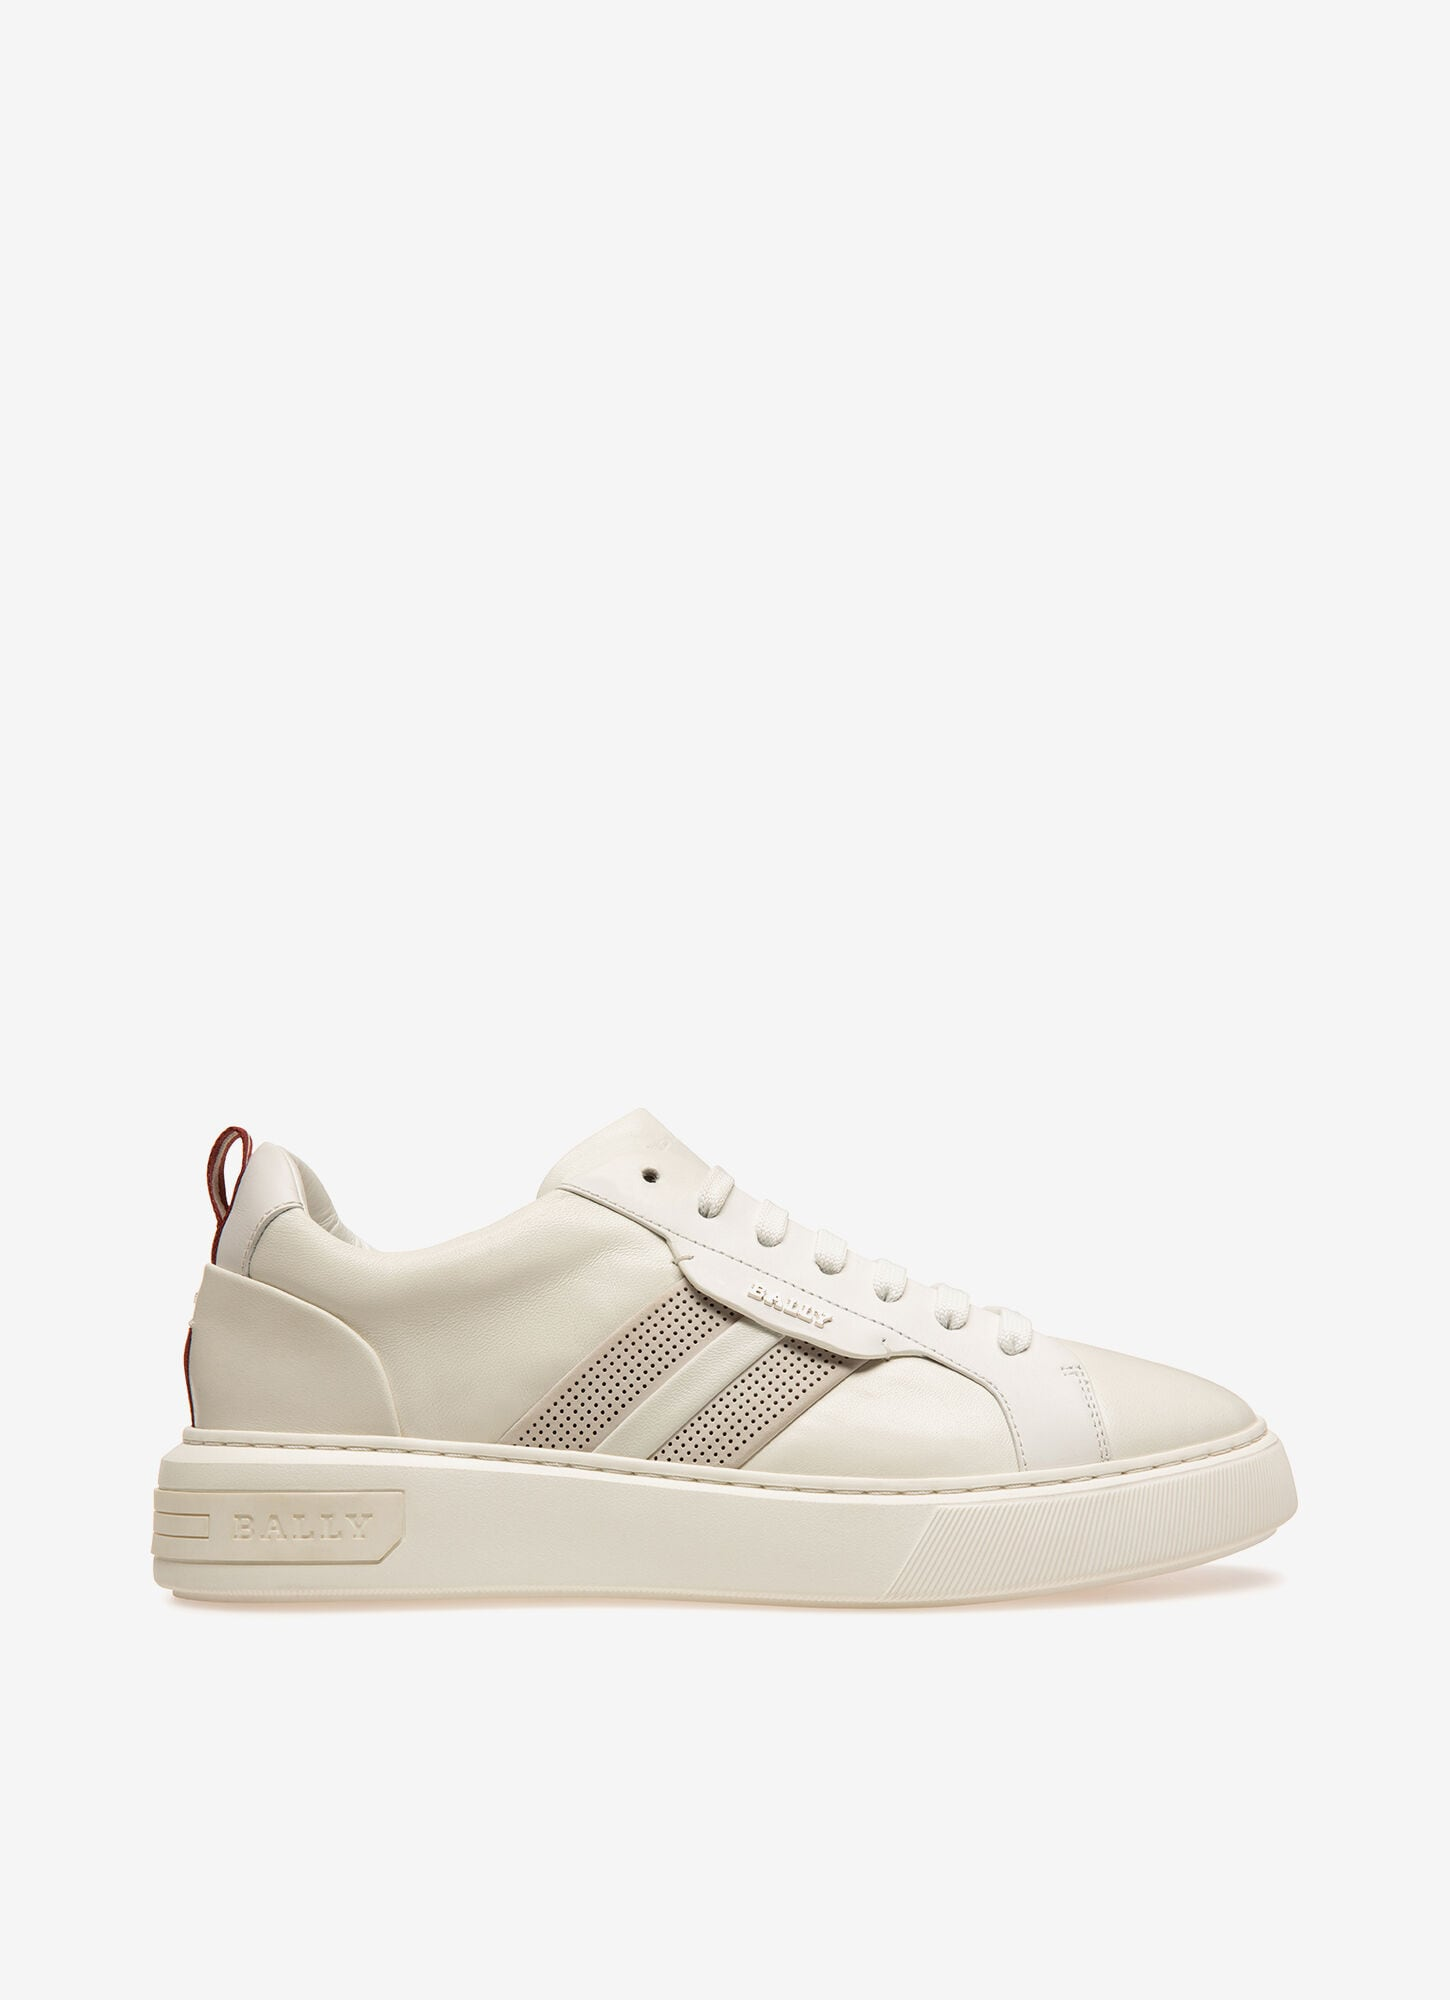 Maxim  Mens Sneakers   White Leather